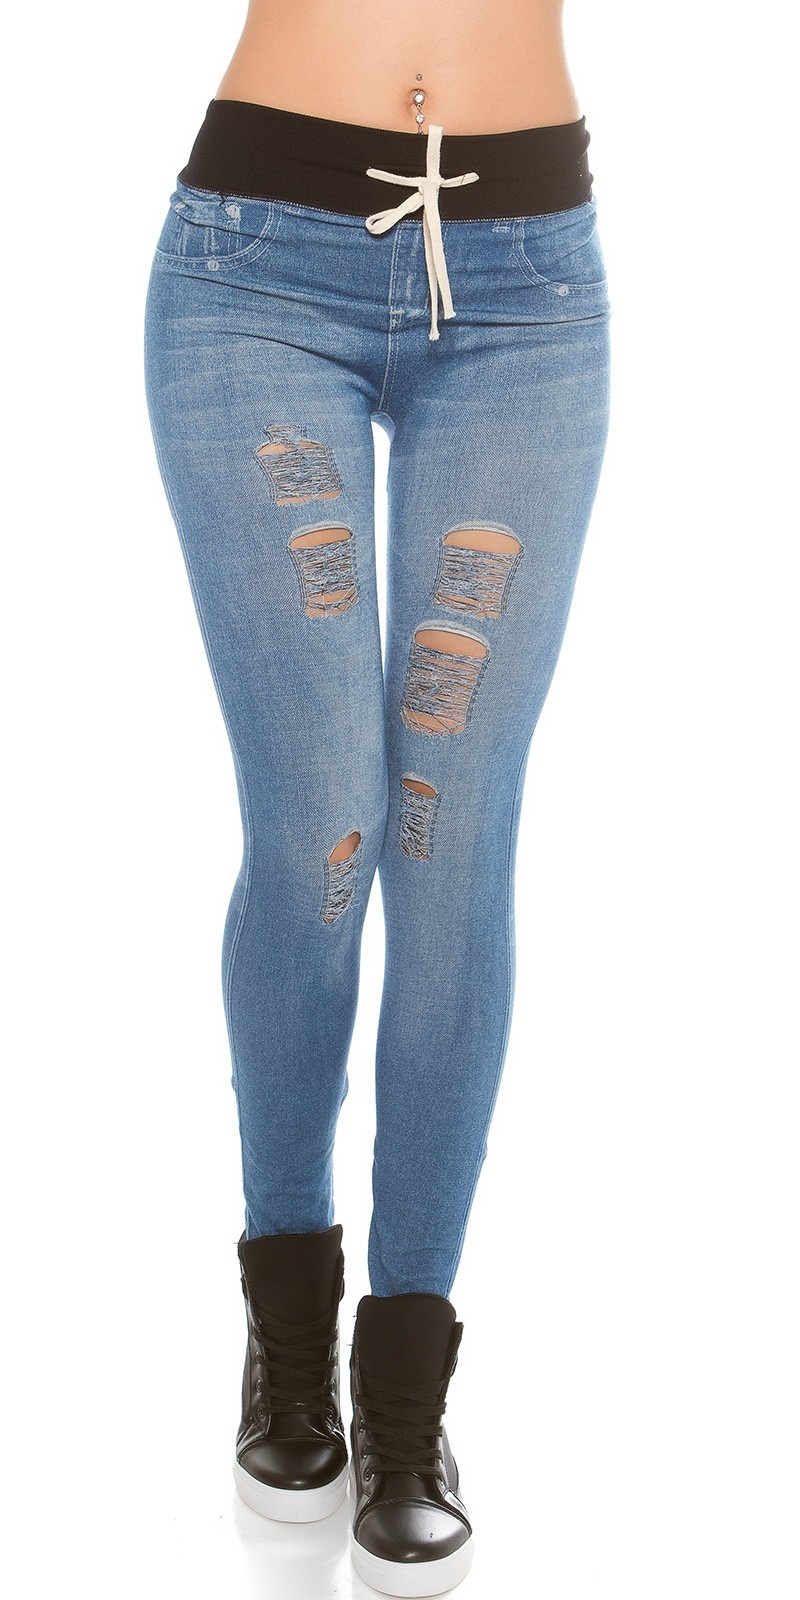 Trendy Jeanslook-Leggins with cracks & pull strap Lightblue